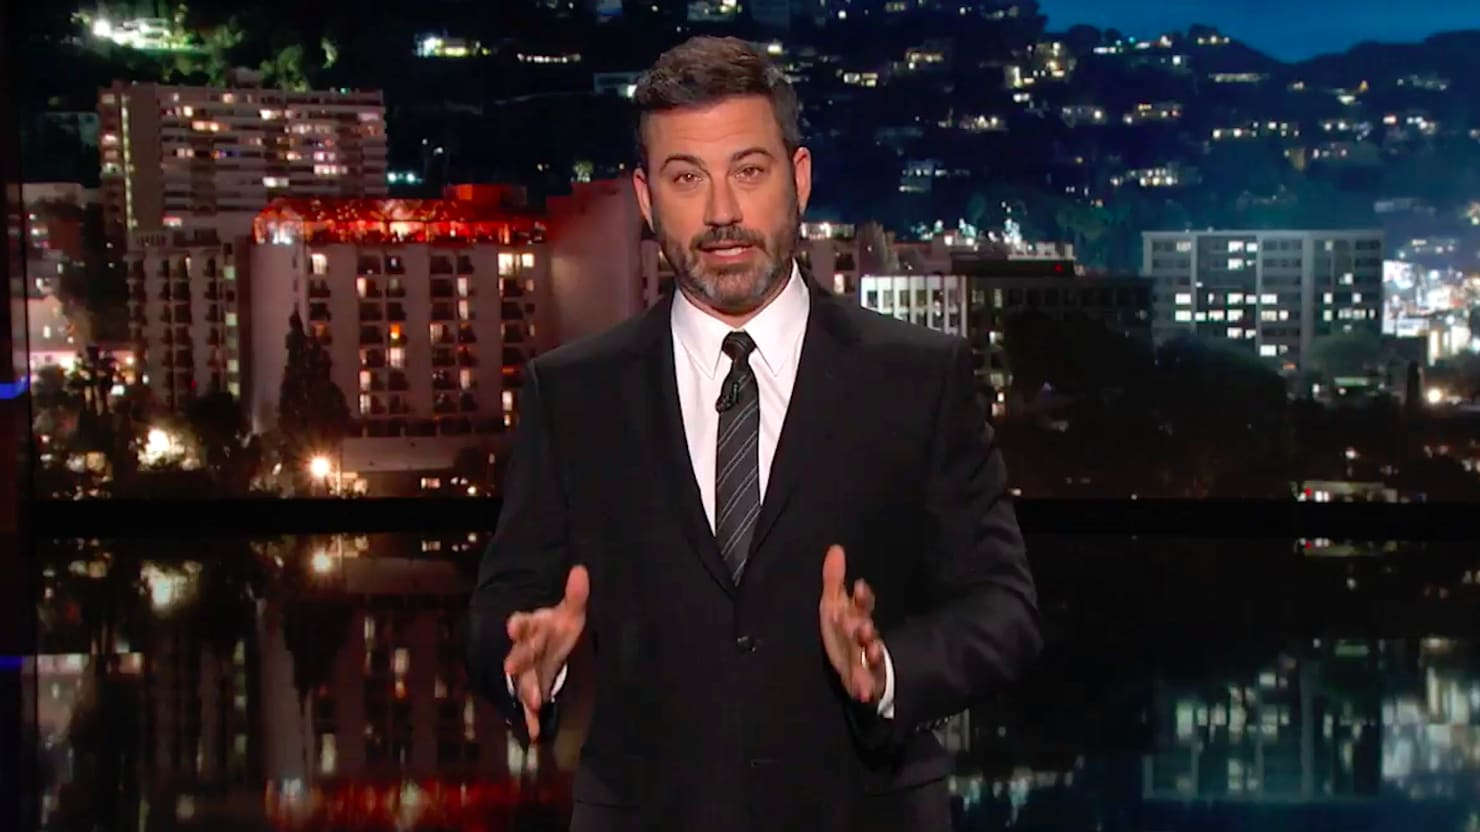 Jimmy Kimmel Makes Confession About Working With Chuck SChumer